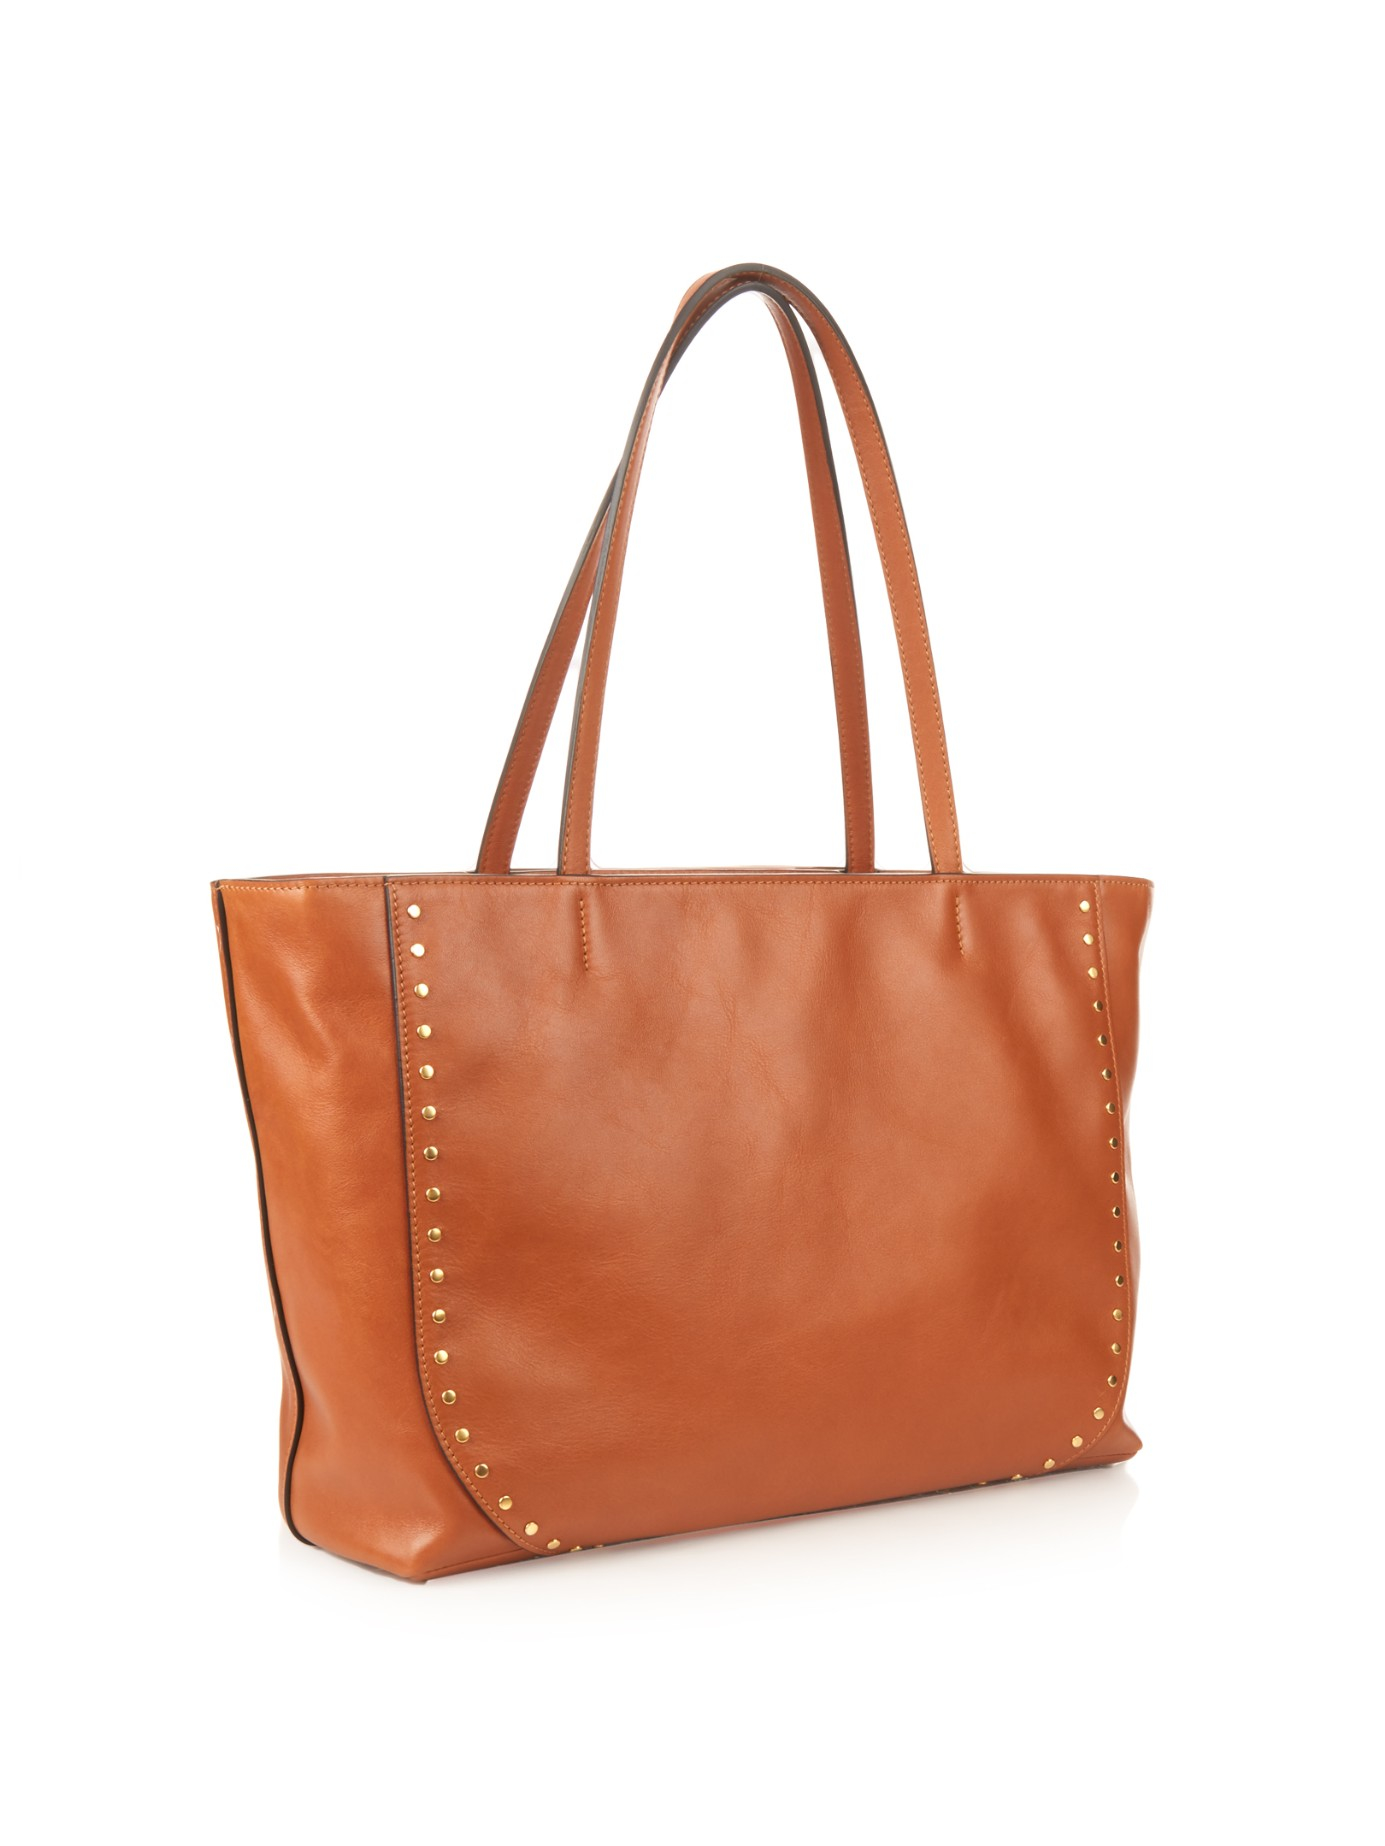 chleo handbags - Chlo�� Isa Studded Leather Tote in Brown (TAN) | Lyst